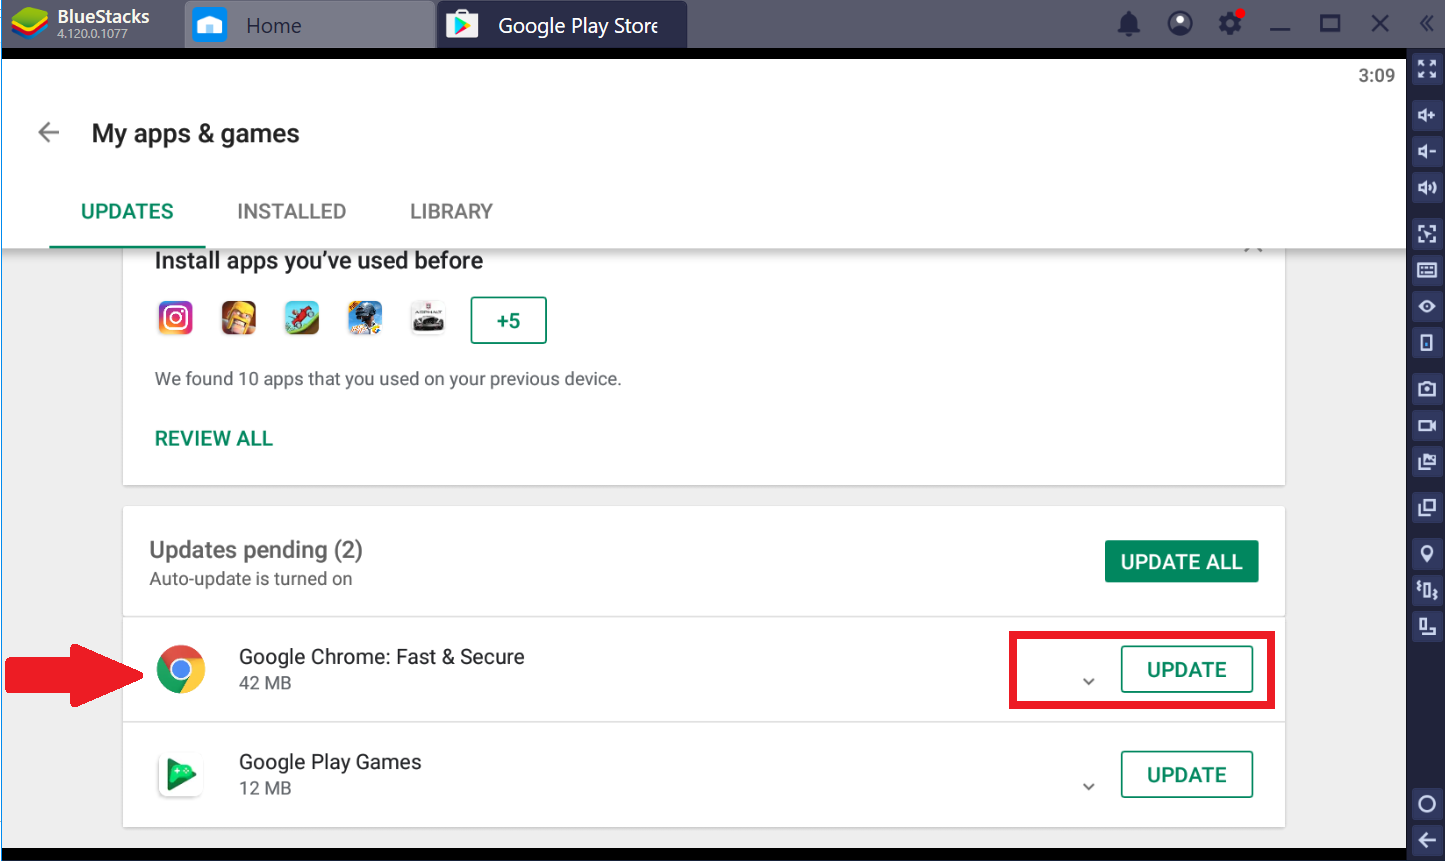 How can I update the apps from Google Play Store? – BlueStacks Support